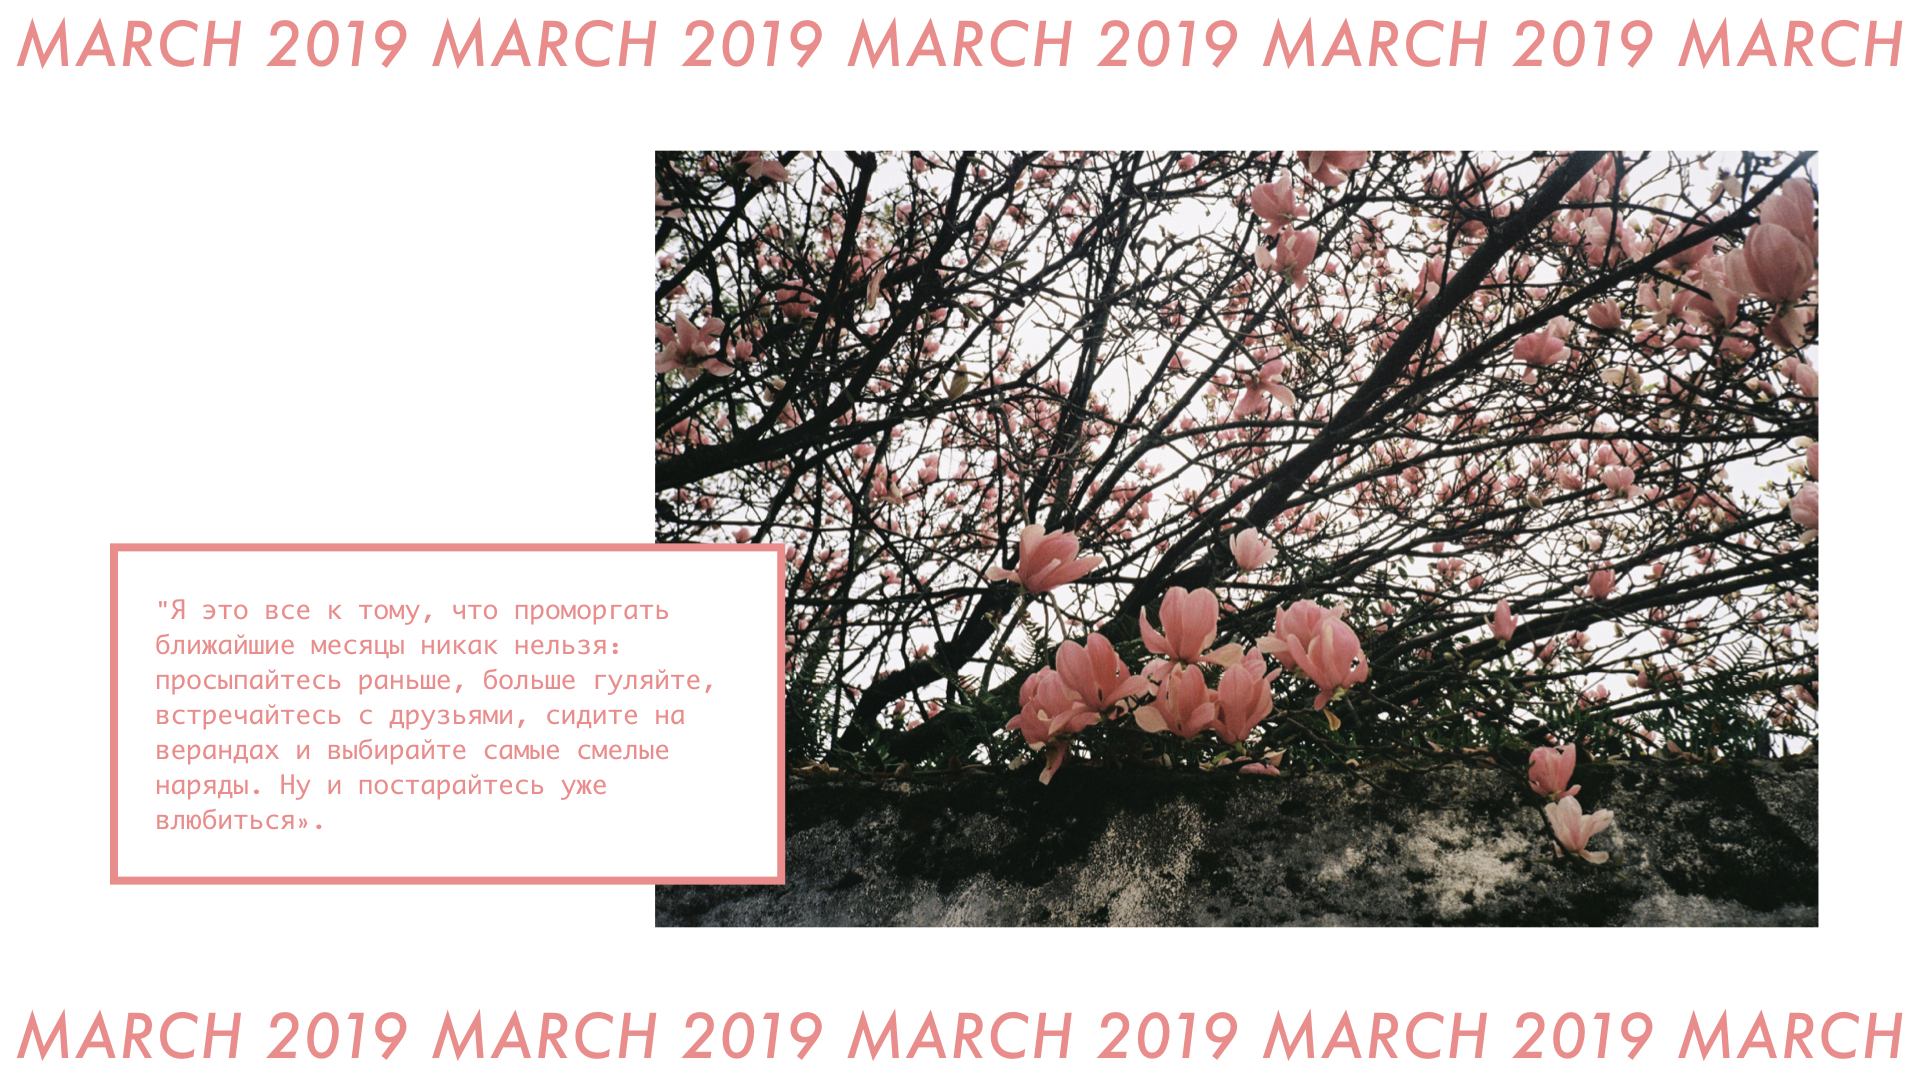 CURRENT JAMS: MARCH 2019